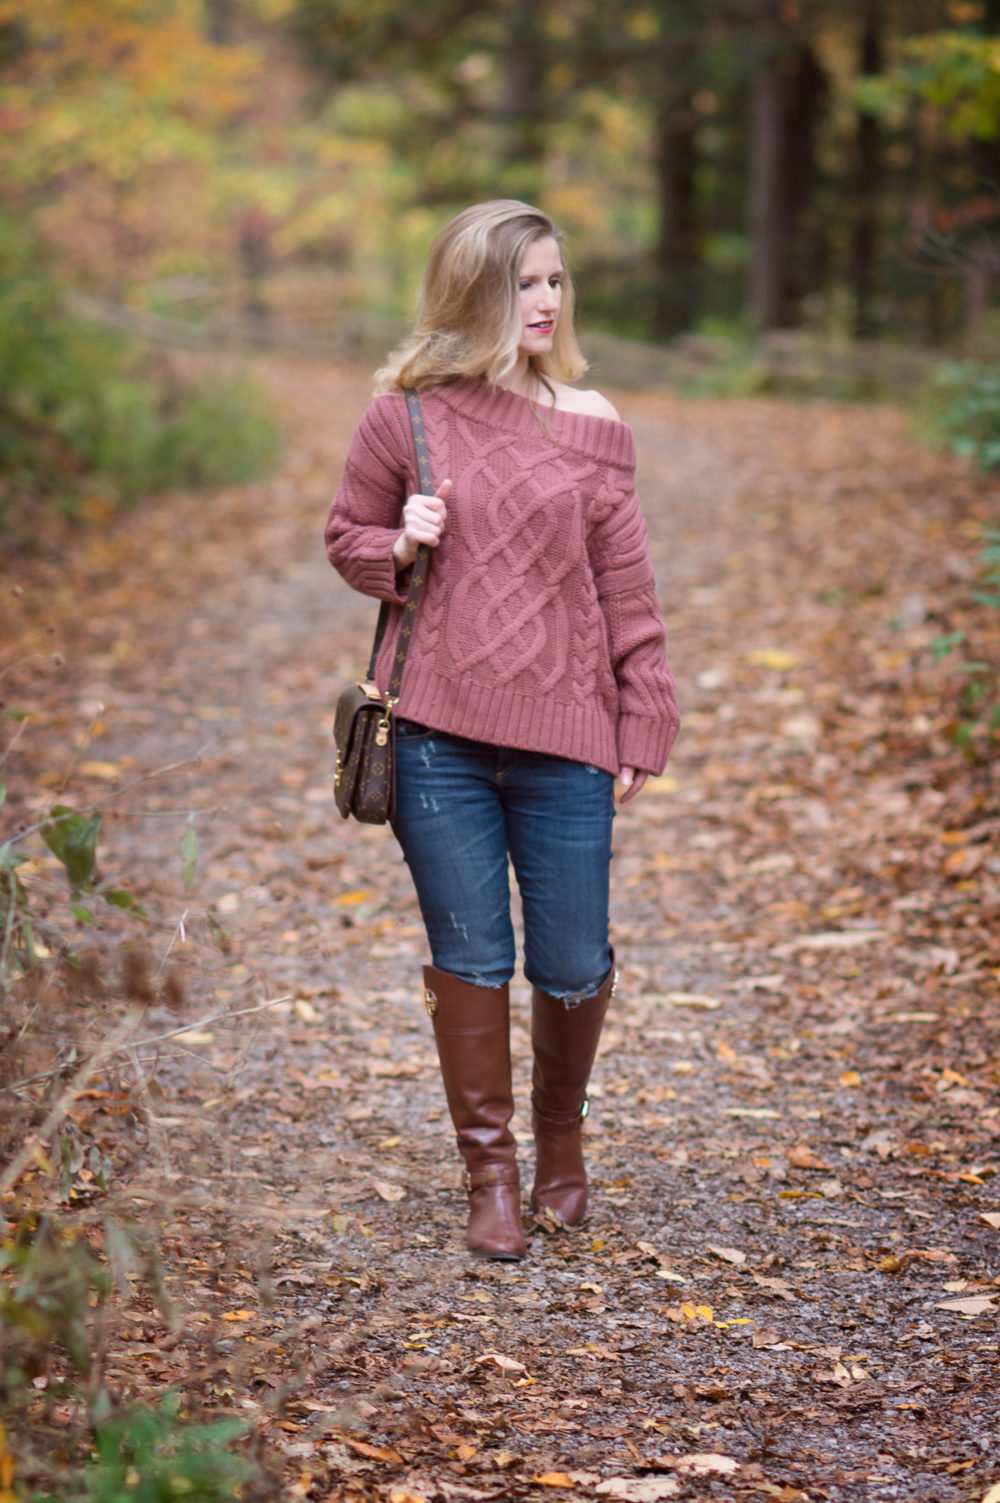 Petite Fashion and Style Blog | J.O.A. Off the Shoulder Cable Sweater | Tory Burch Riding Boots | Louis Vuitton Pochette Metis Bag | Click to Read More...